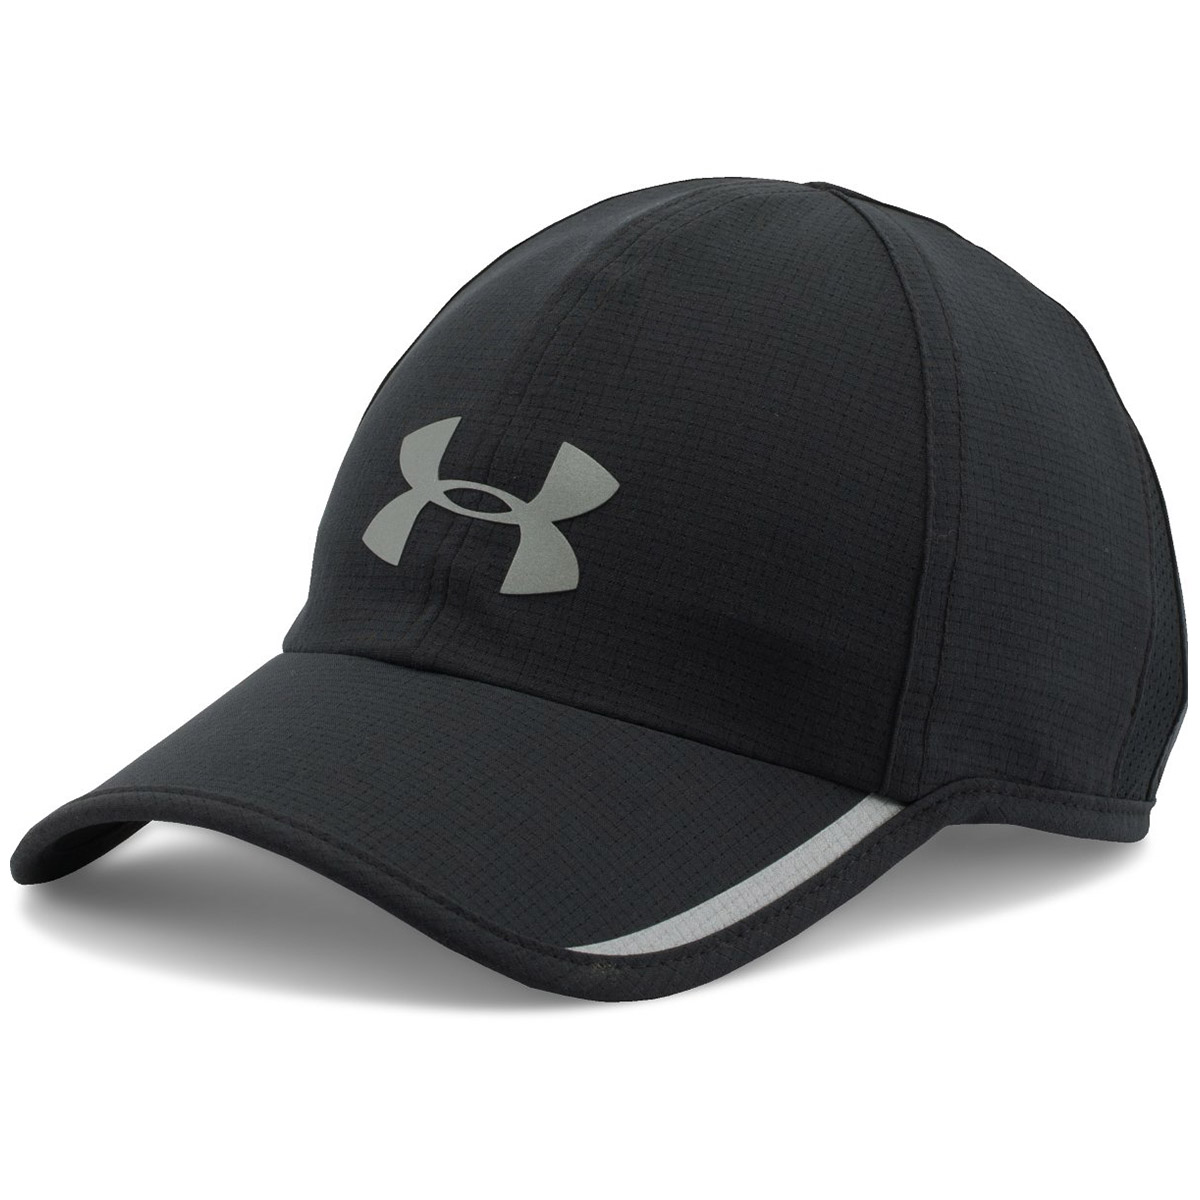 90fde35c66f cheap under armour baseball cap